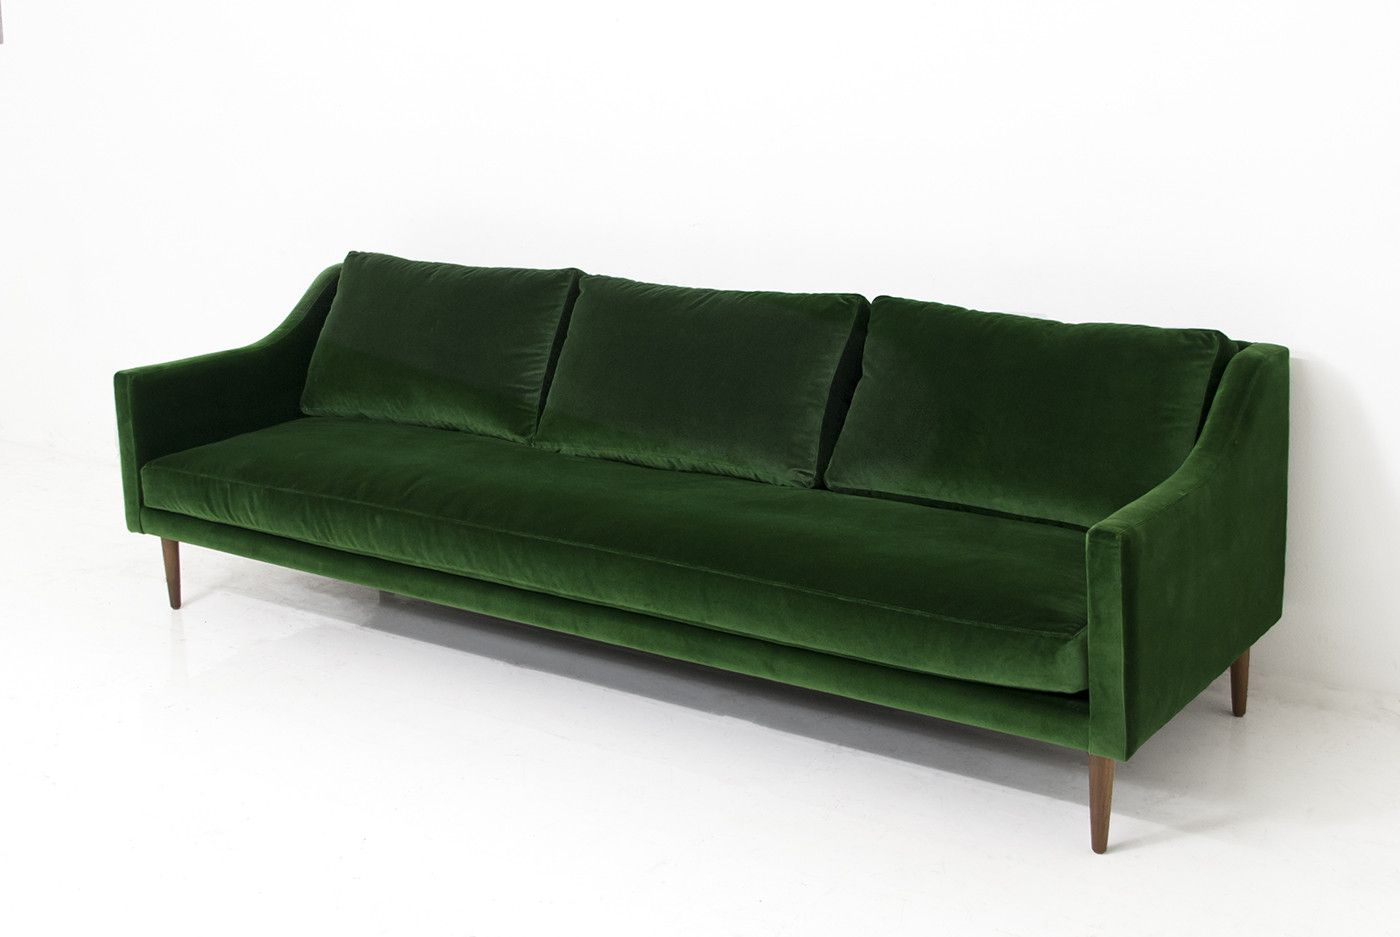 Nice Sofa Set Pic Modern Living Room With Dark Grey Green Velvet Couch Unique 81